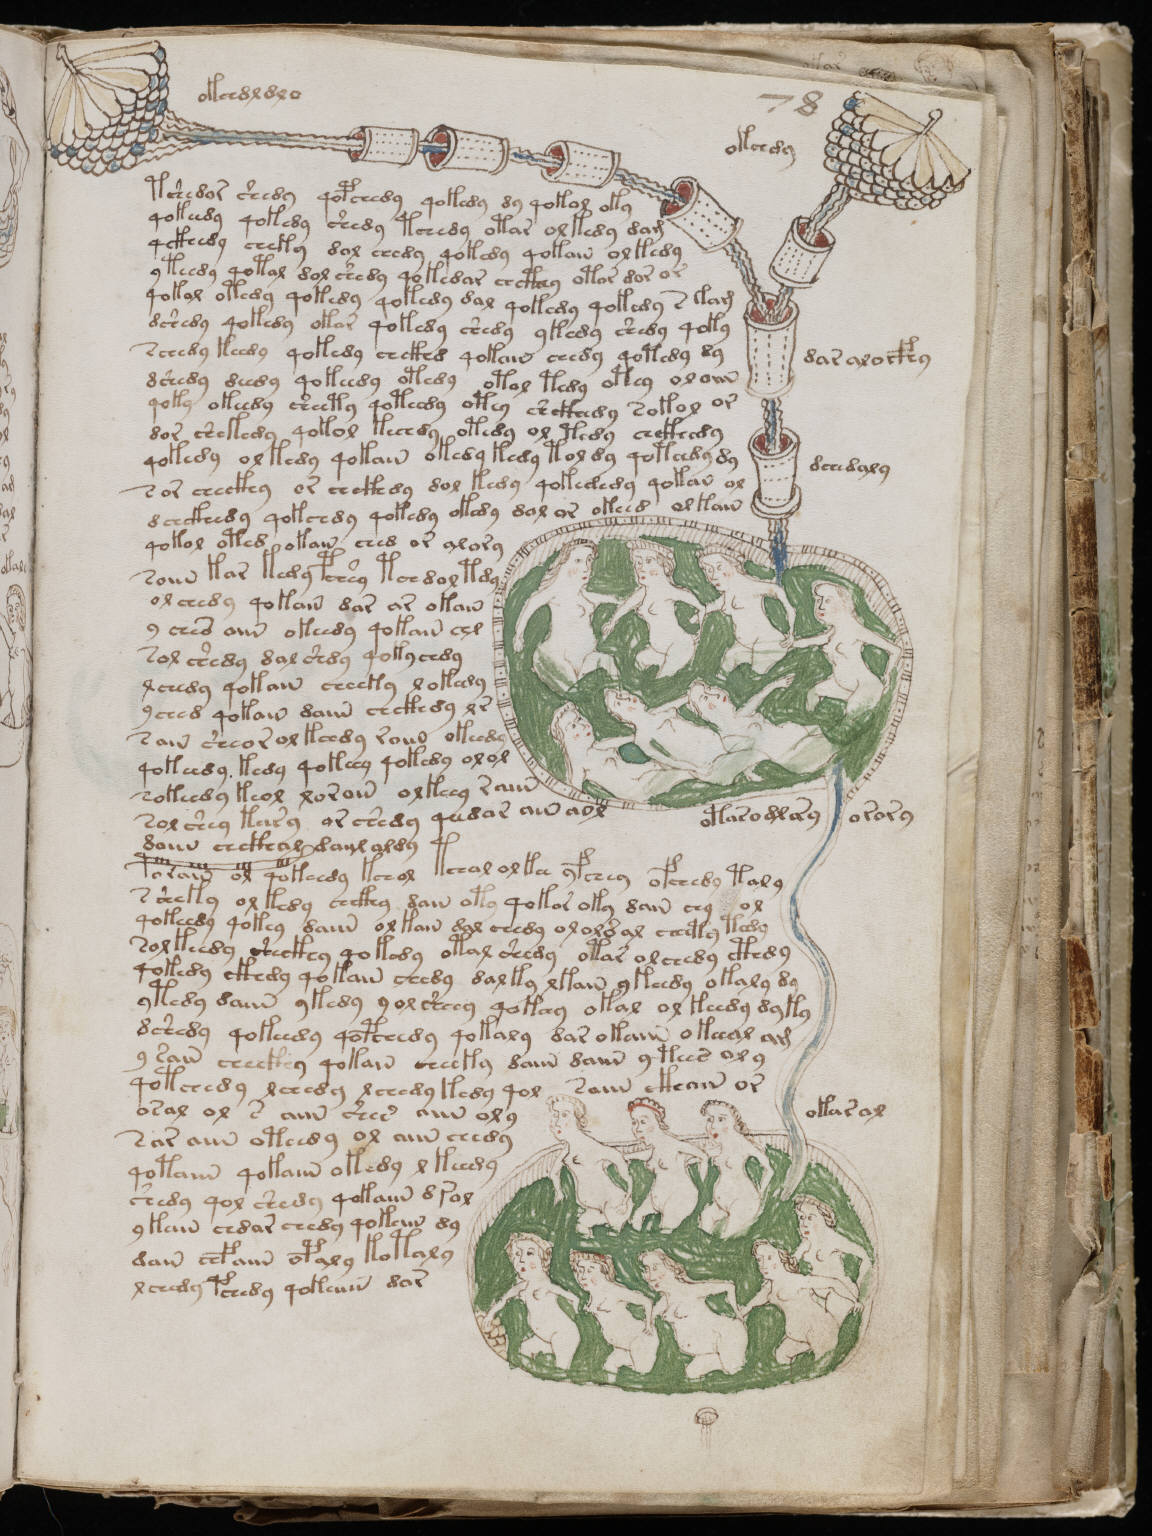 https://upload.wikimedia.org/wikipedia/commons/2/26/Voynich_Manuscript_%28141%29.jpg